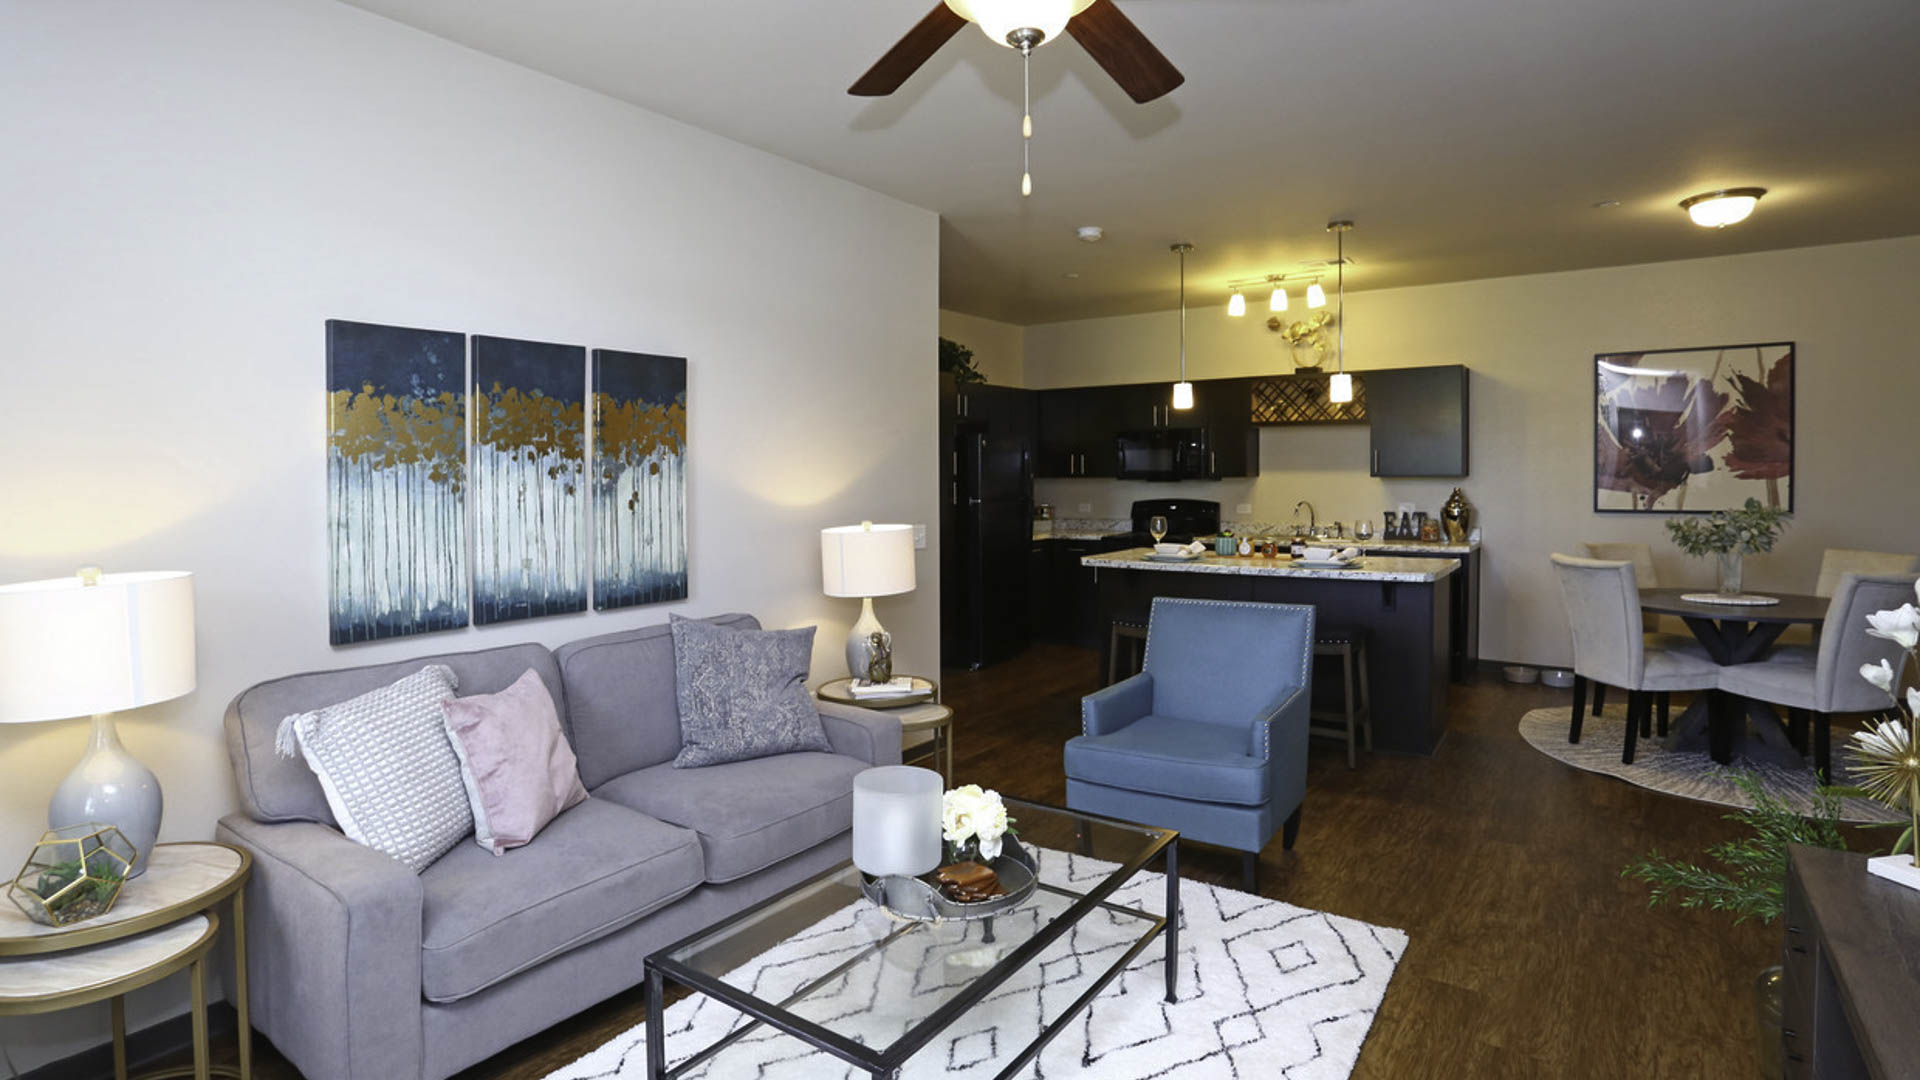 Springs at Canterfield living room and kitchen  in West Dundee, IL